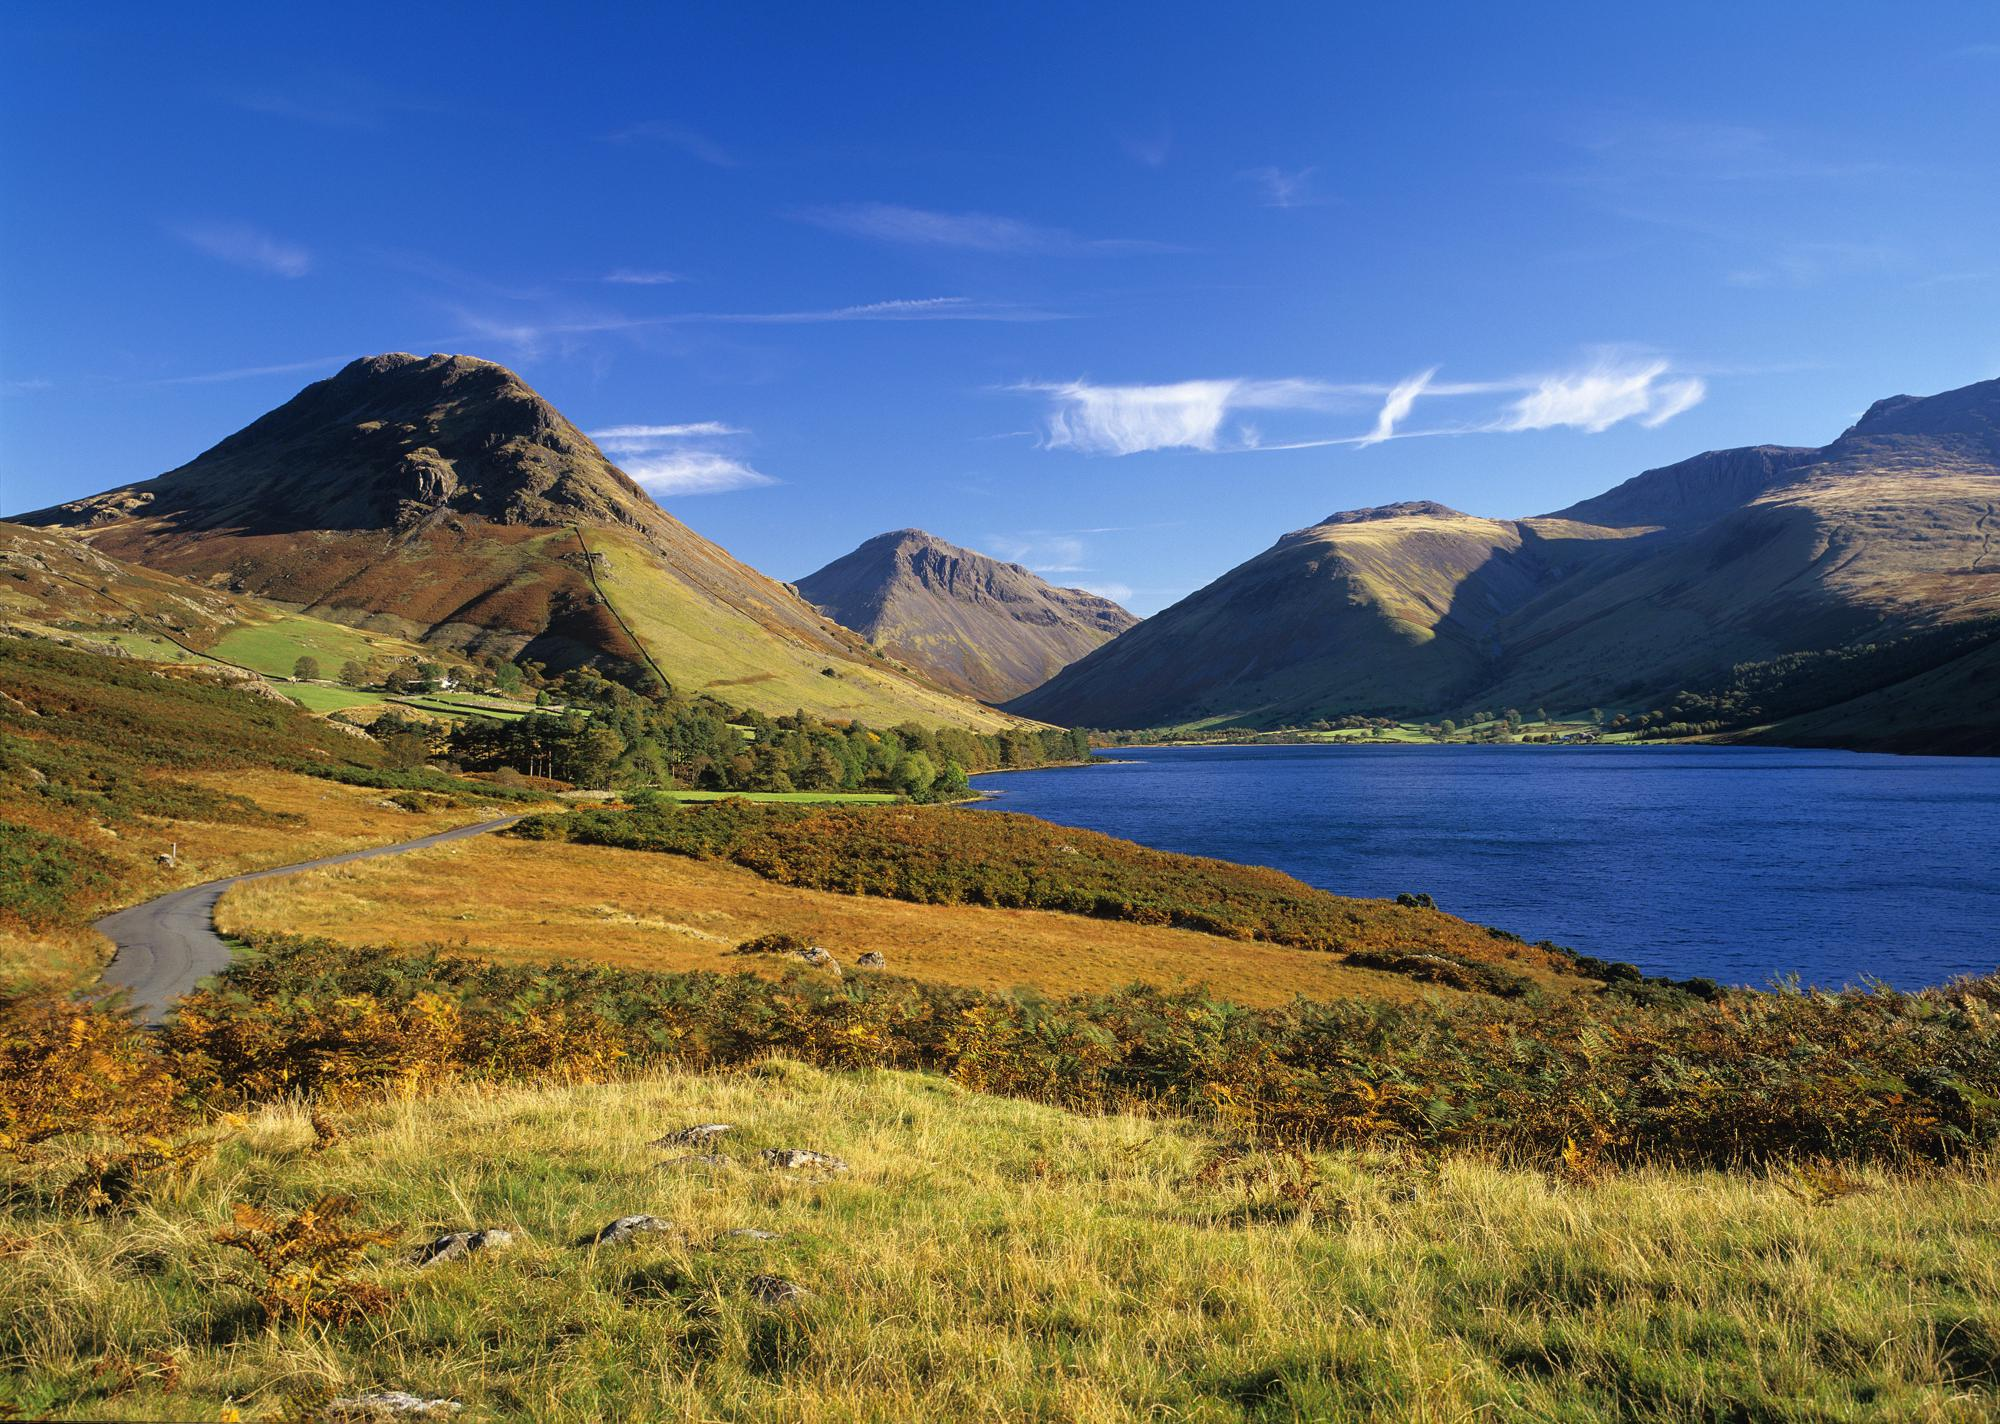 Wasdale Camping – Campsites near Wasdale, Lake District